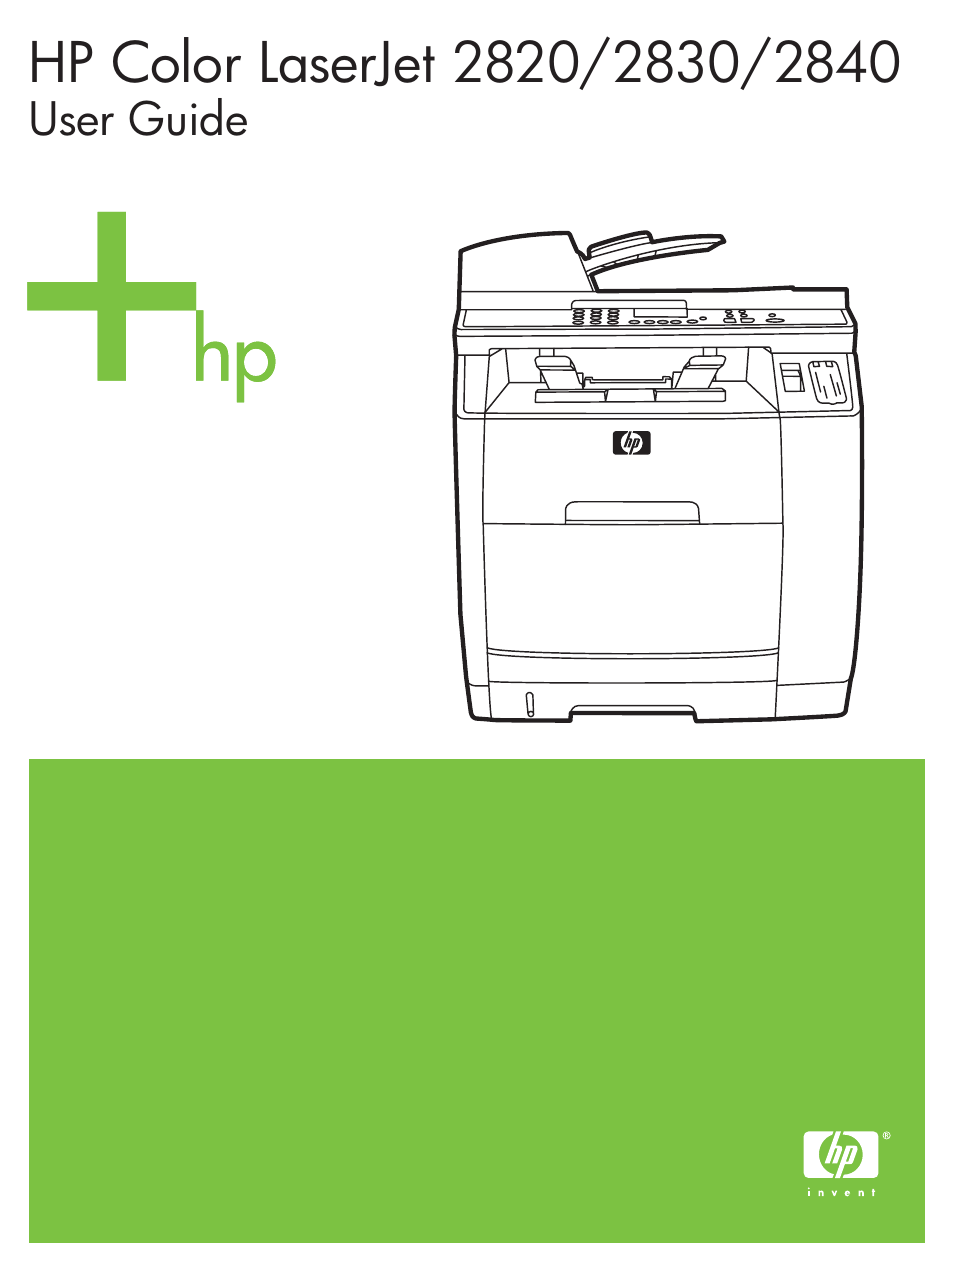 HP 2820 User Manual | 334 pages | Also for: 2840, Color LaserJet 2800  All-in-One Printer series